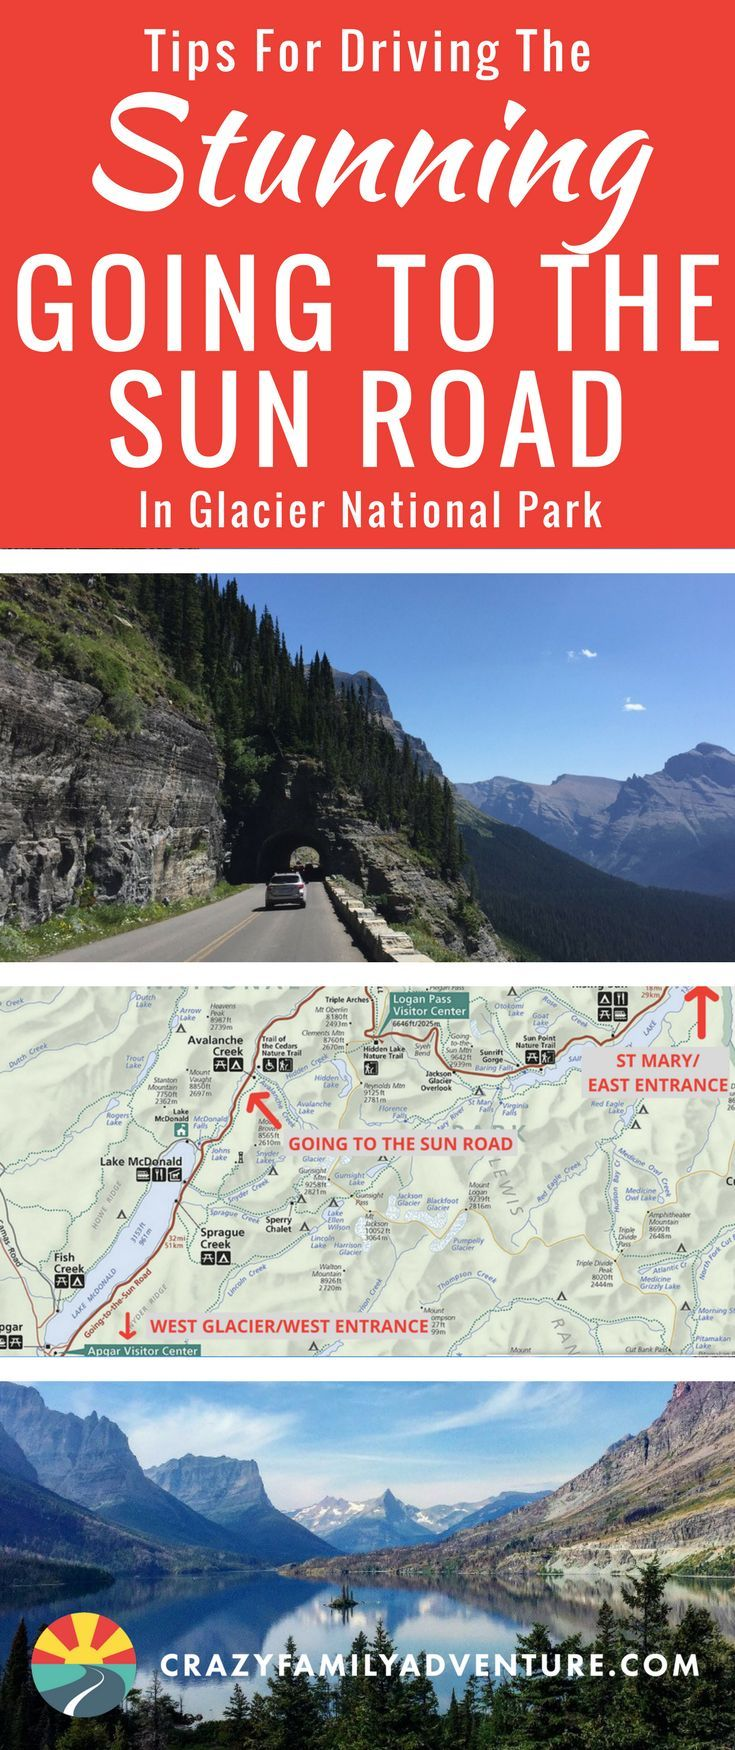 Top tips for driving the Stunning Going To The Sun Road in Glacier National Park